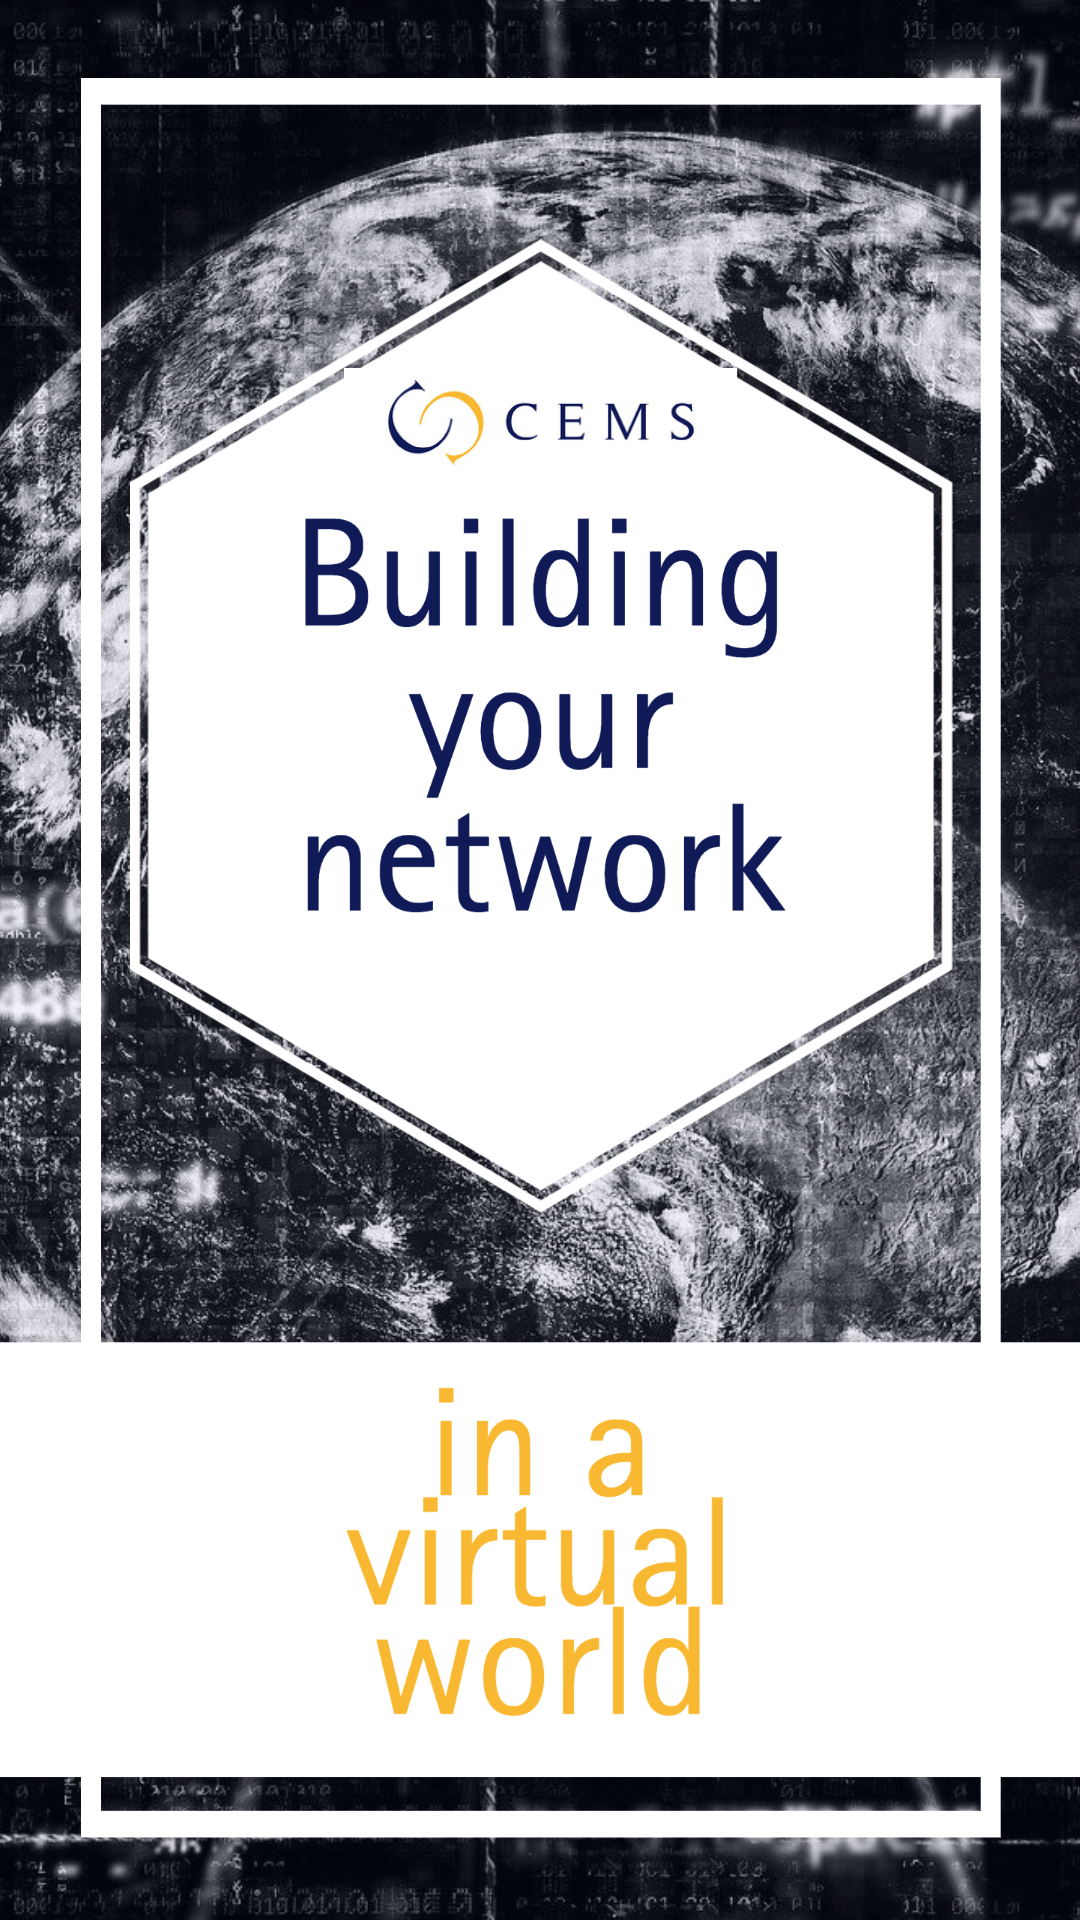 10 Tips from the CEMS Alliance for Networking in a Virtual World